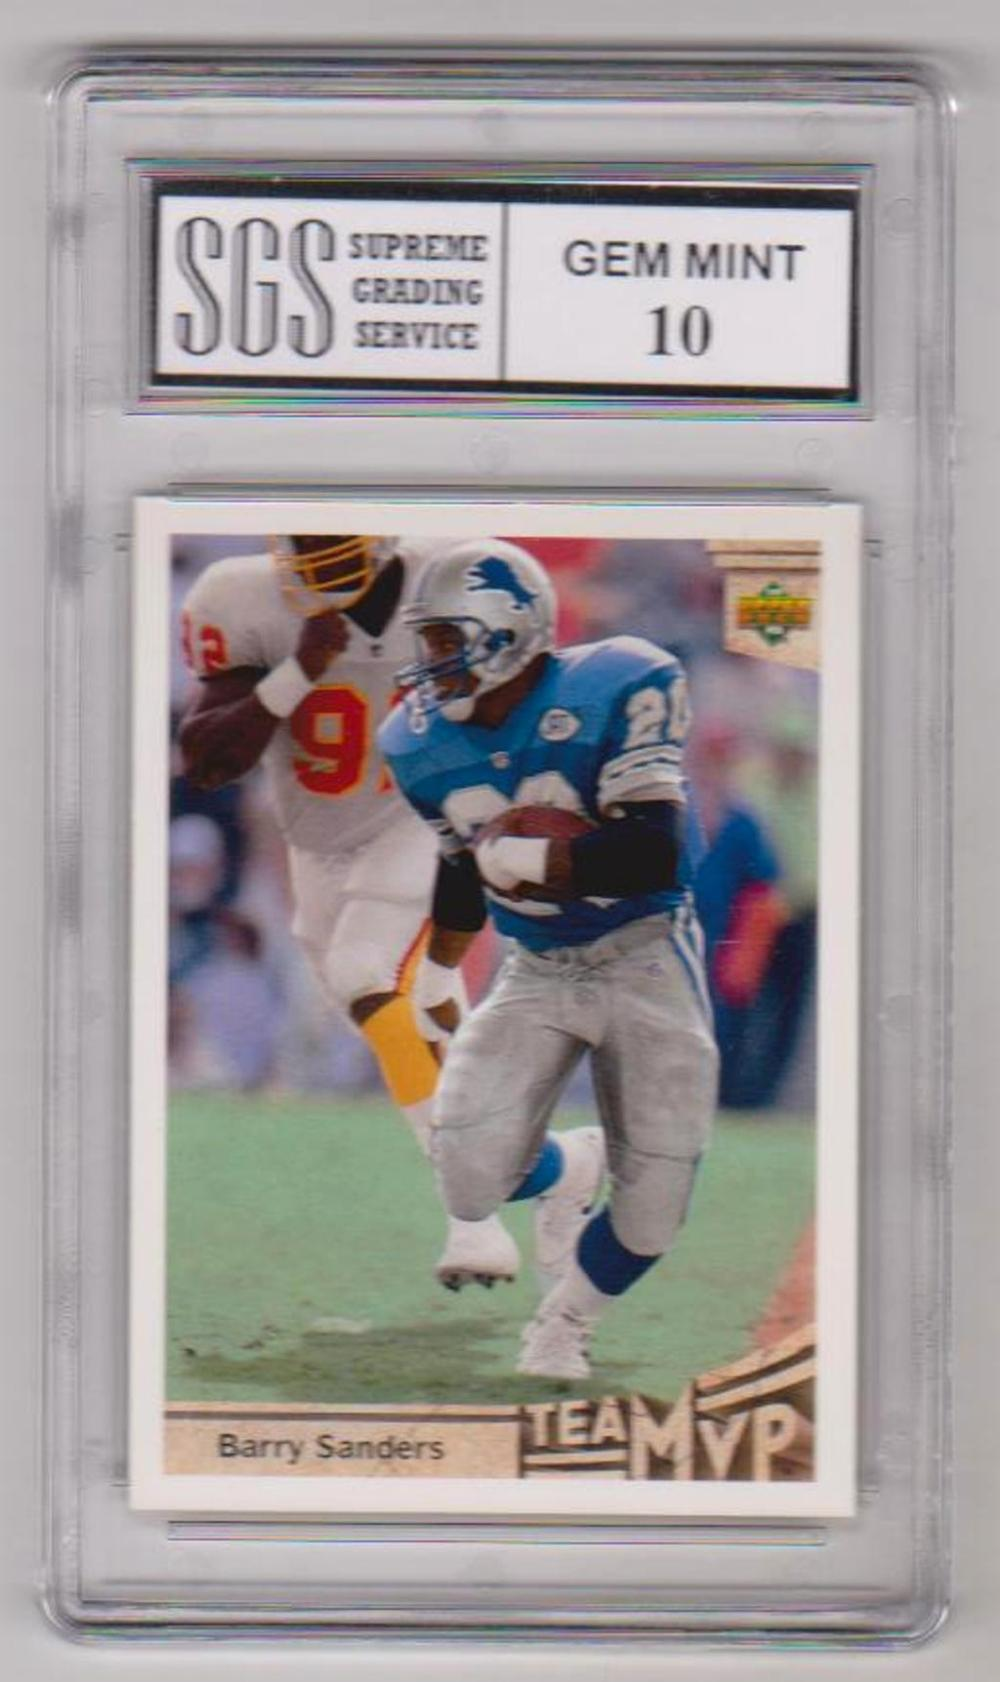 Graded Gem Mint 10 Barry Sanders 1992 Upper Deck #368 Card